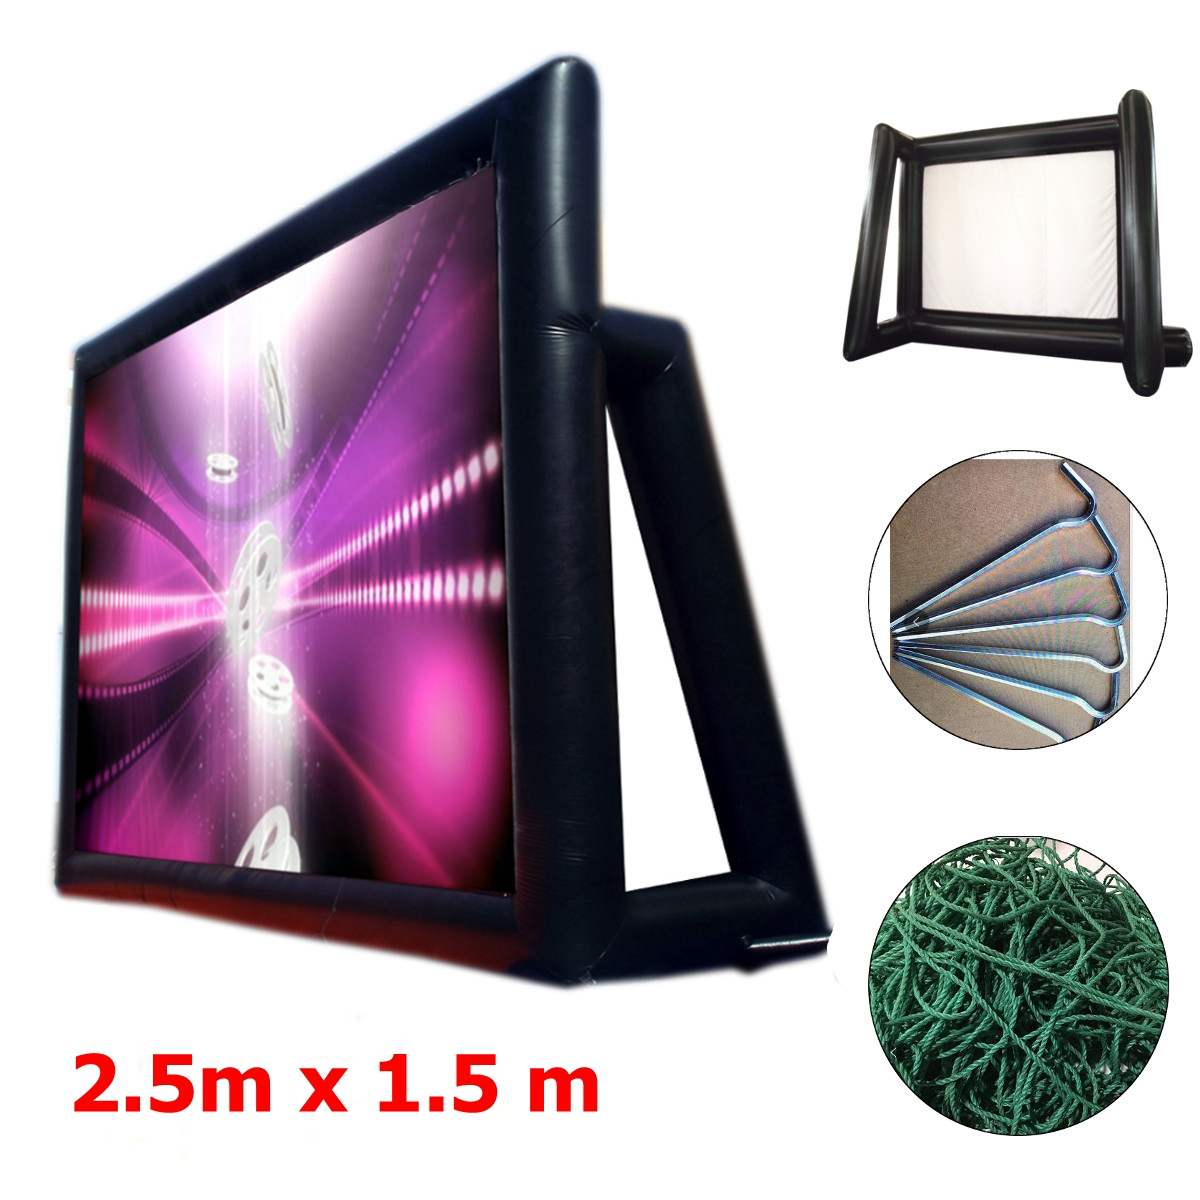 1.33mx0.75m 16:9 inflatable movie screen inflatable rear projection movie screen inflatable film screen1.33mx0.75m 16:9 inflatable movie screen inflatable rear projection movie screen inflatable film screen